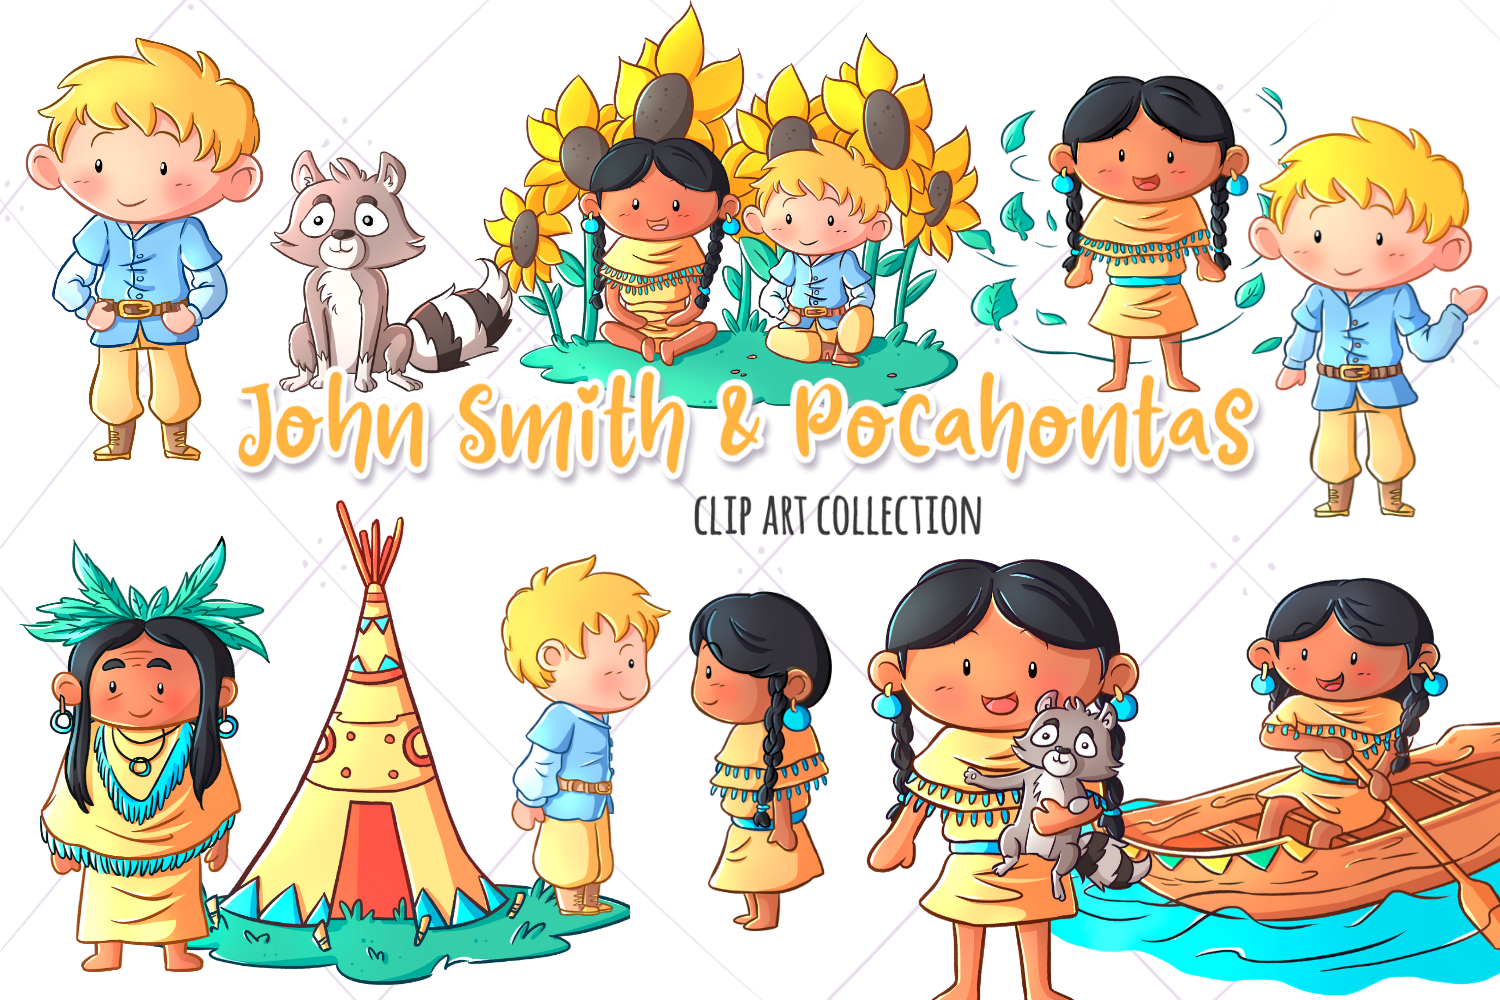 Download Free John Smith And Pocahontas Clip Art Graphic By for Cricut Explore, Silhouette and other cutting machines.